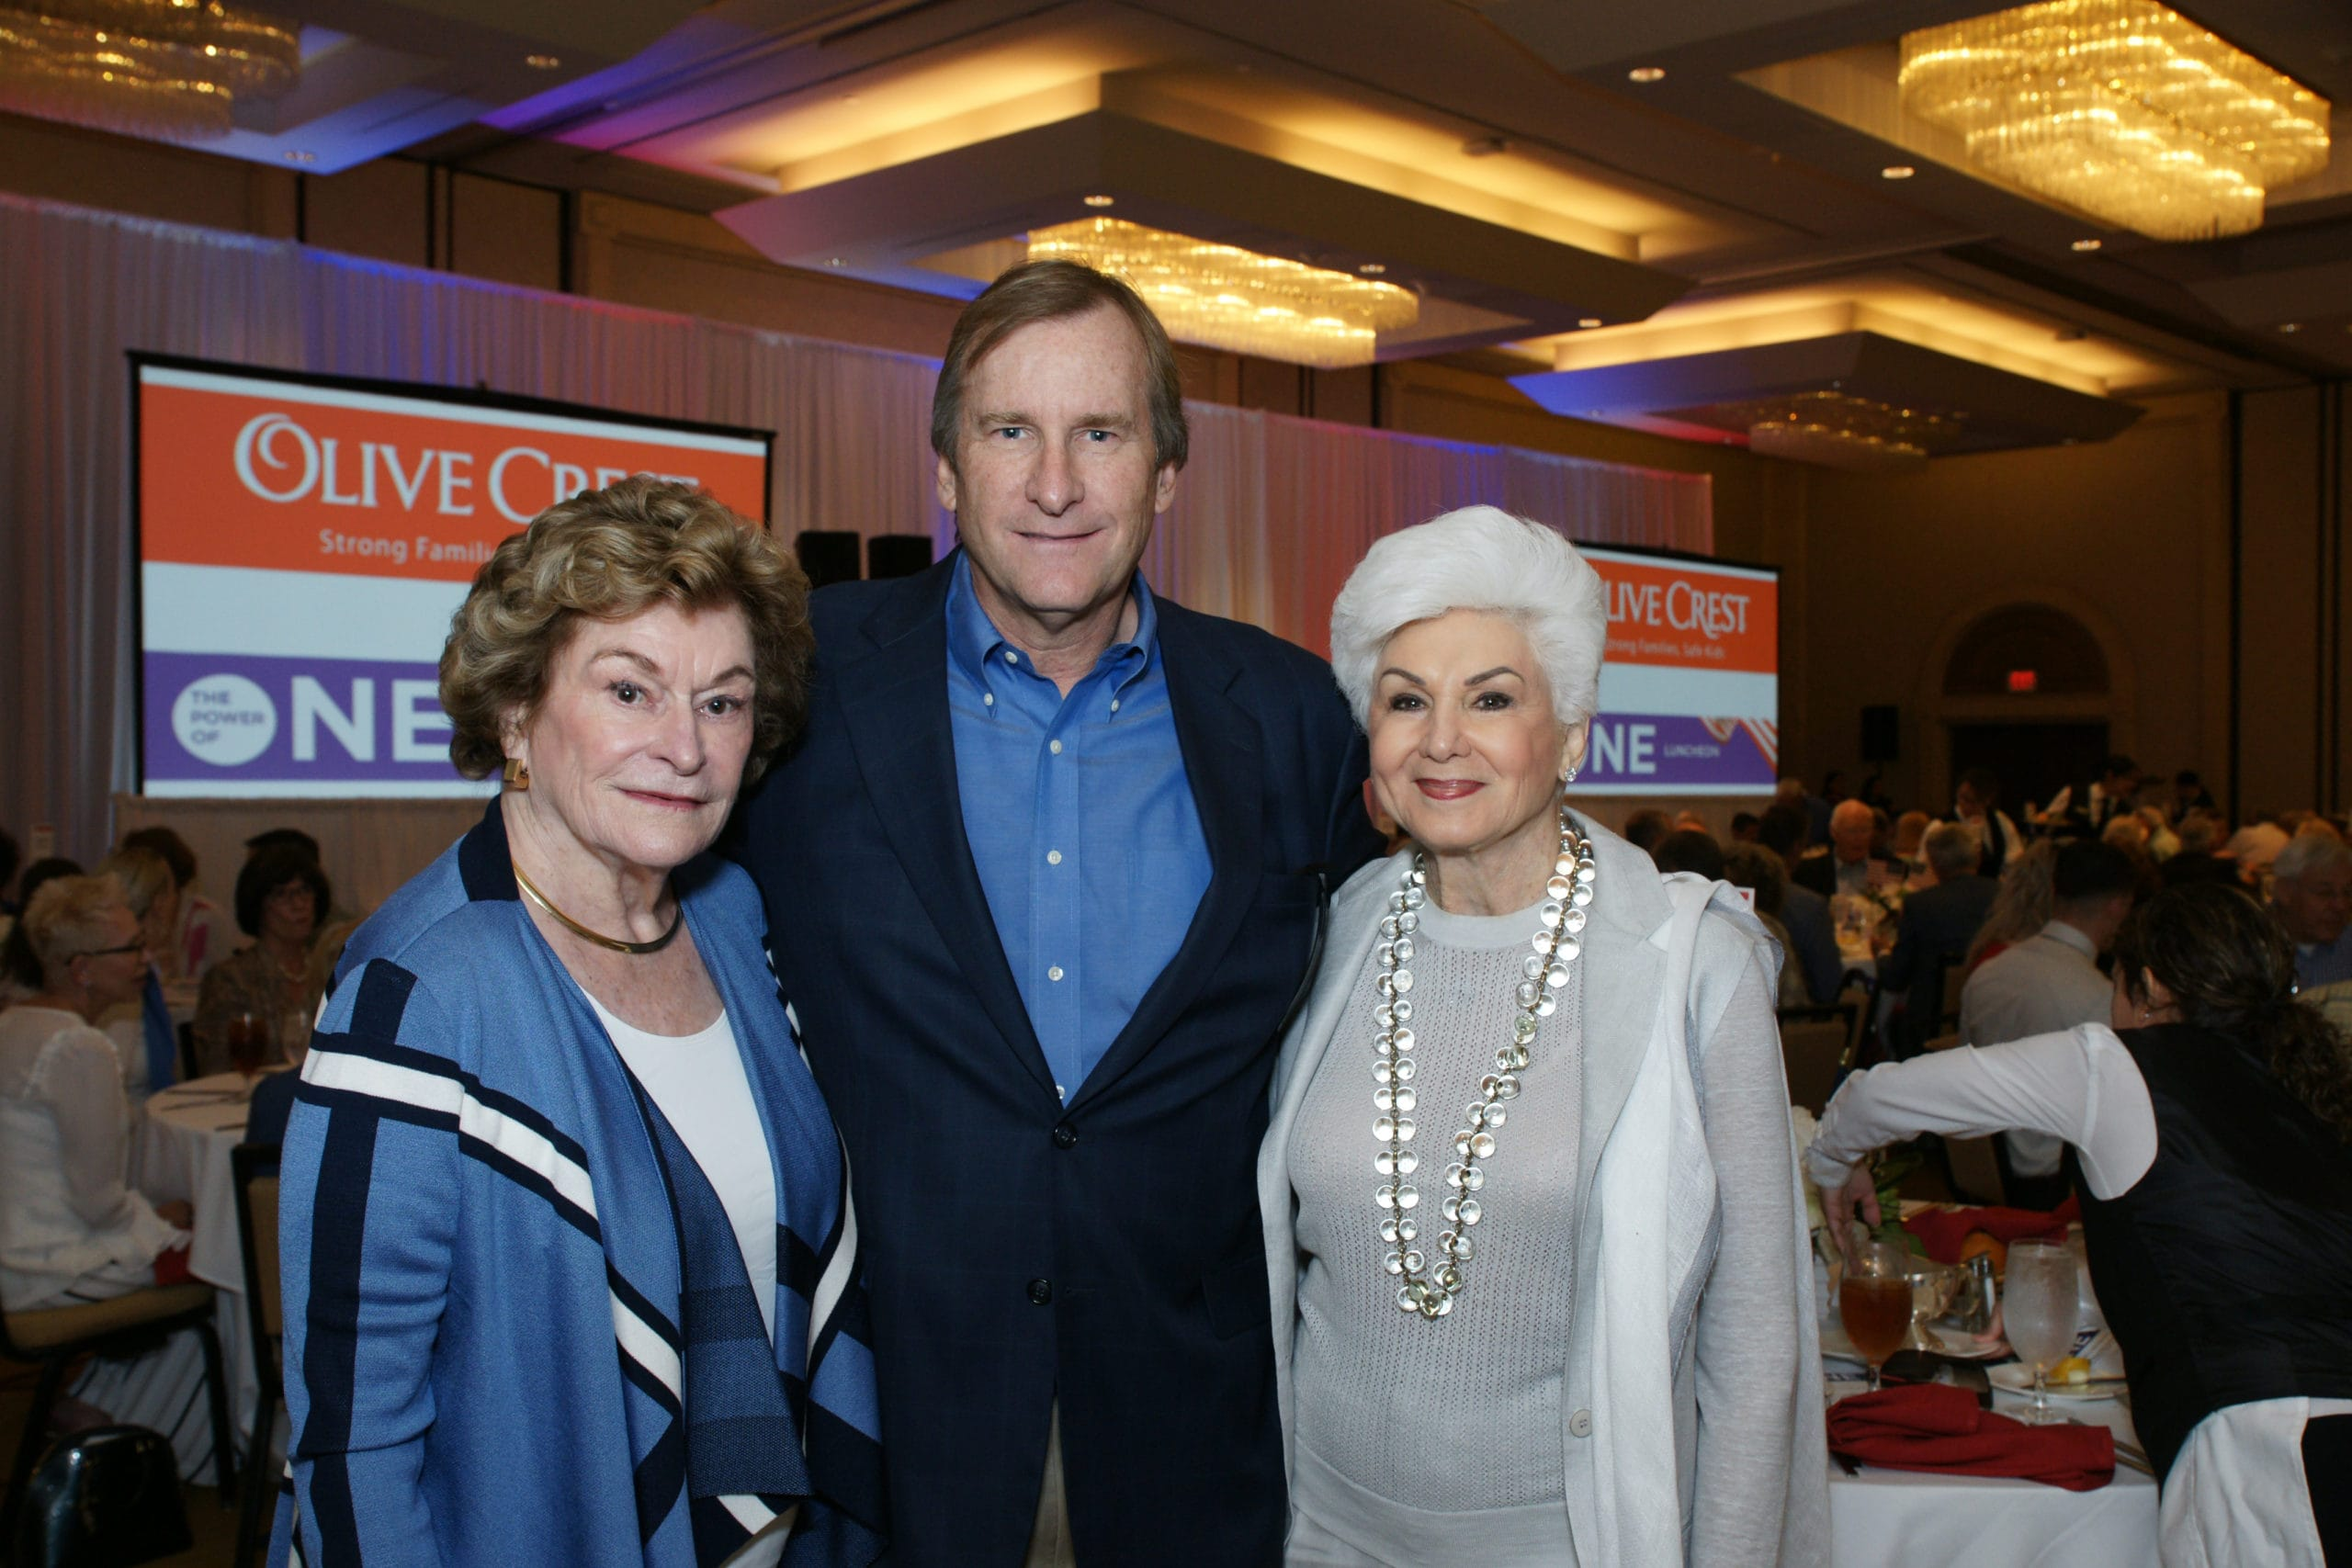 """Benghazi Attack Hero Highights Olive Crest """"Power of One"""" Luncheon"""